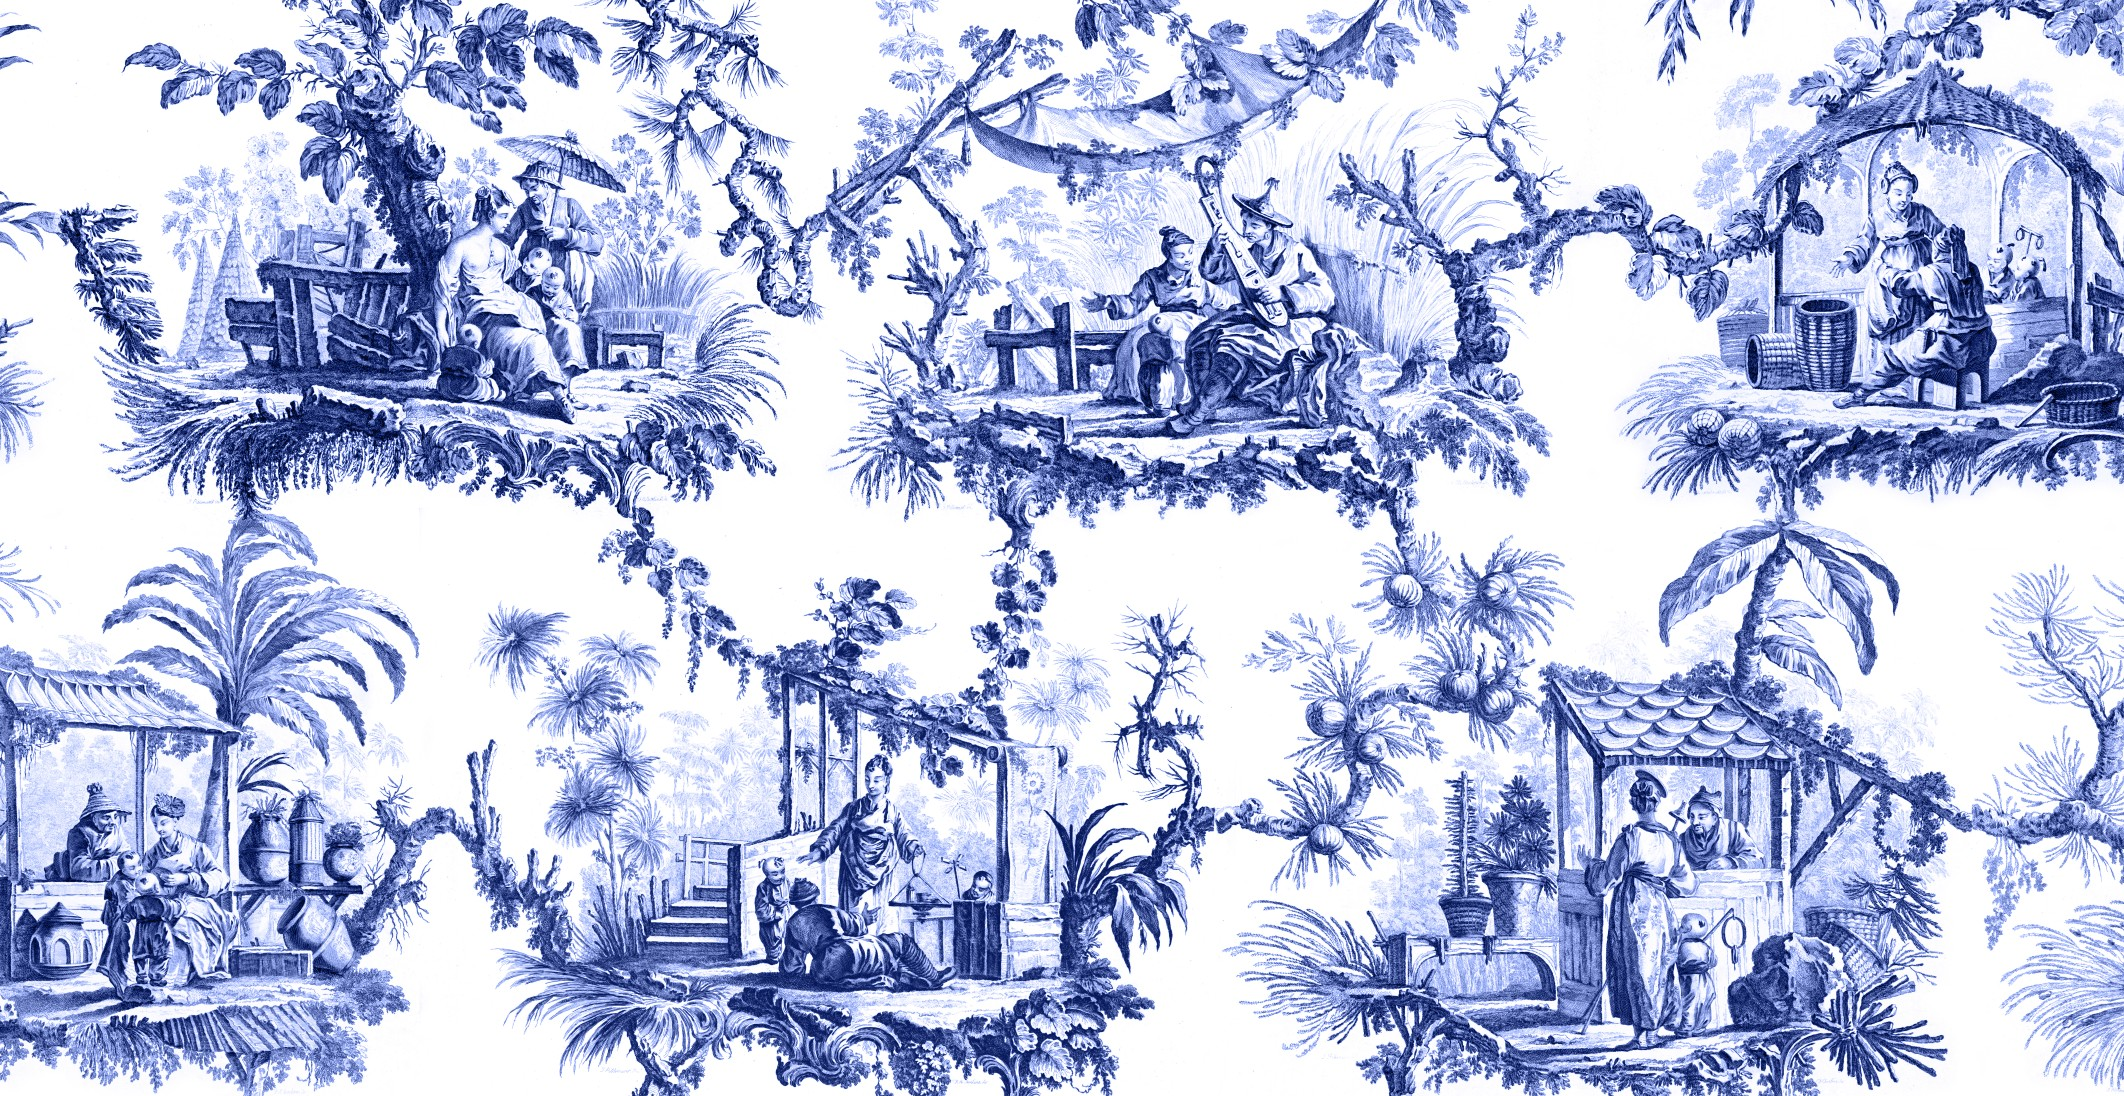 Chinoiserie wallpaper download free stunning full hd for Chinoiserie mural wallpaper